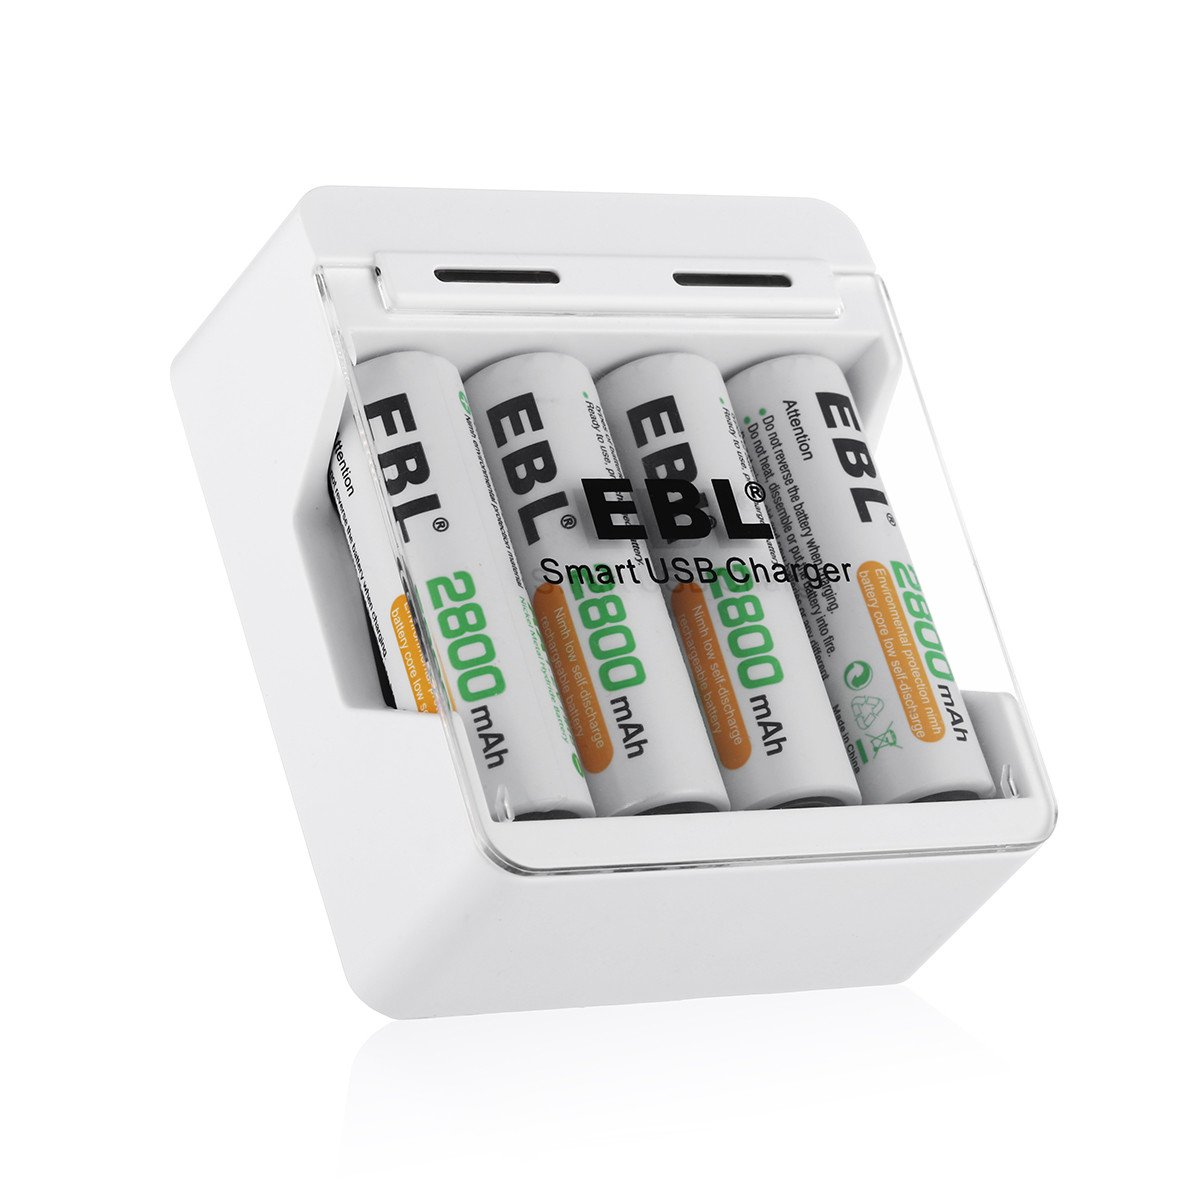 Amazon.com: EBL Smart USB AA AAA Battery Charger and 4 Packs Ni-MH 2800mAh AA Rechargeable Batteries: Home Audio & Theater